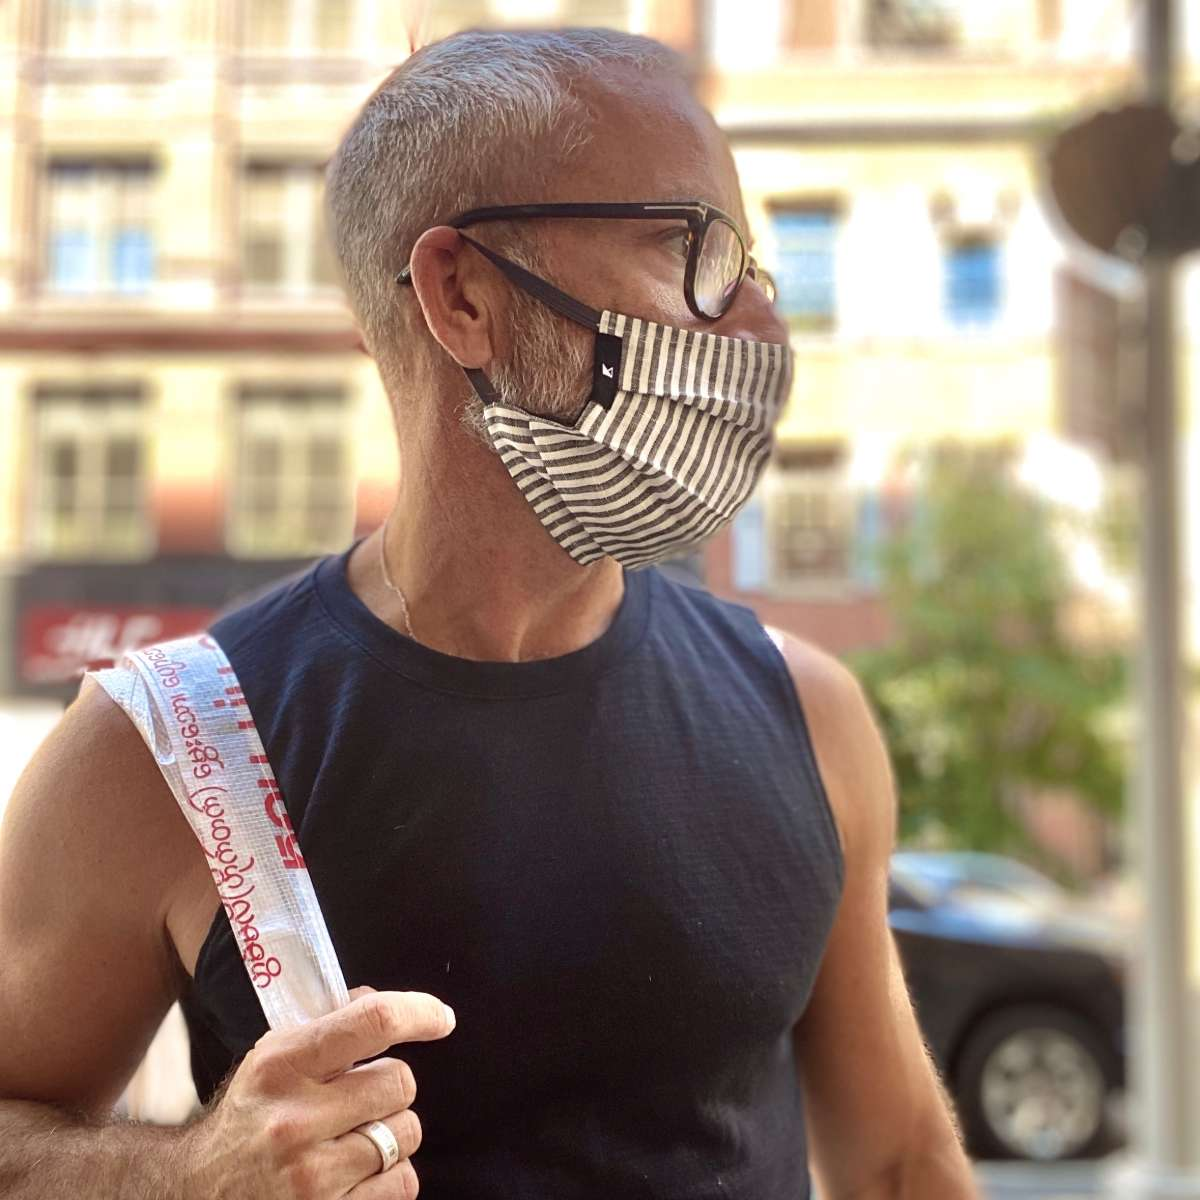 Shop this super functional and stylish mask by Kynsho